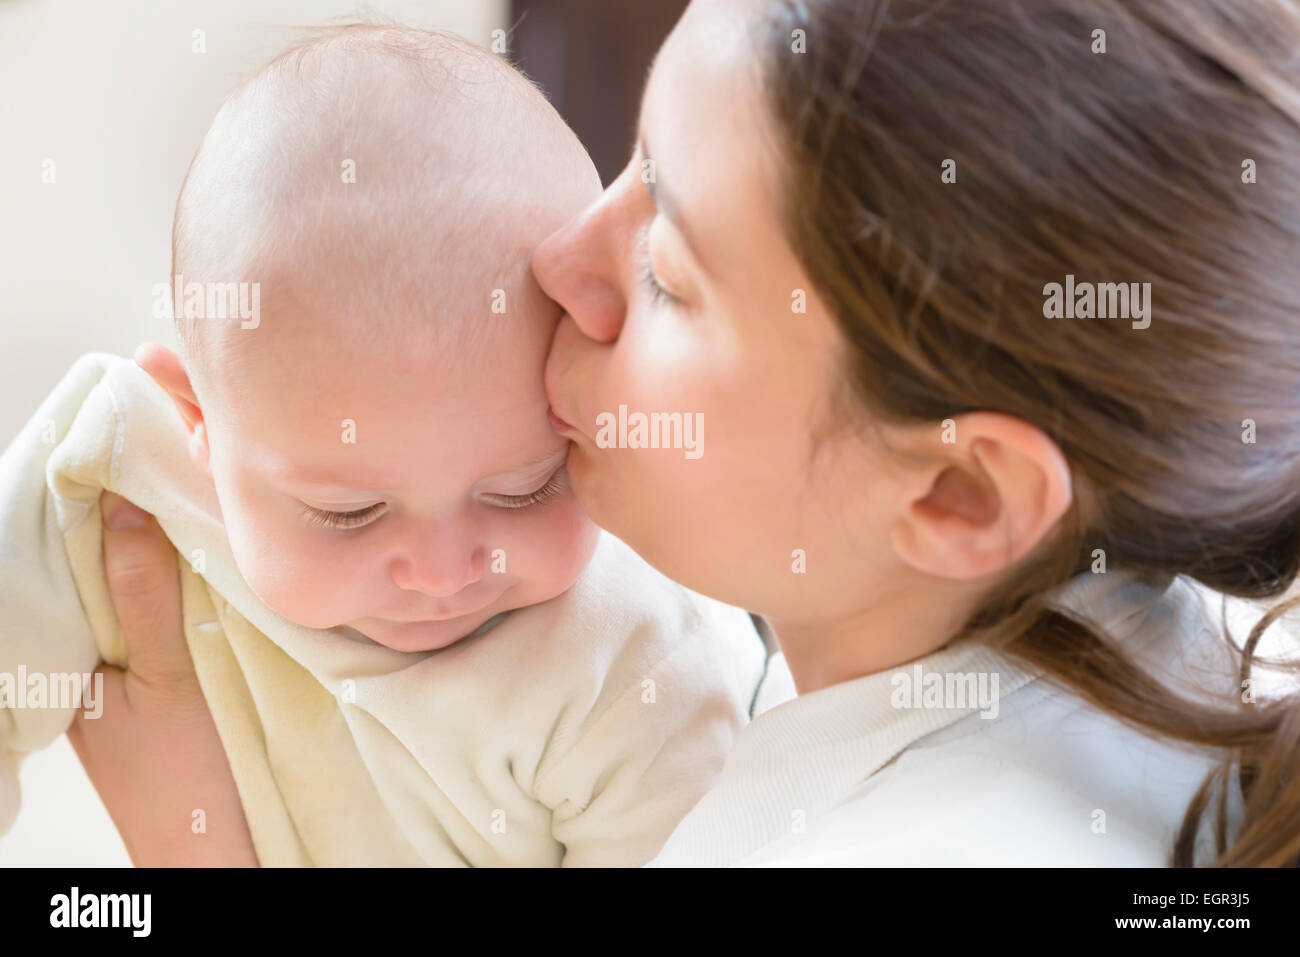 A young mother kissing her little baby - Stock Image